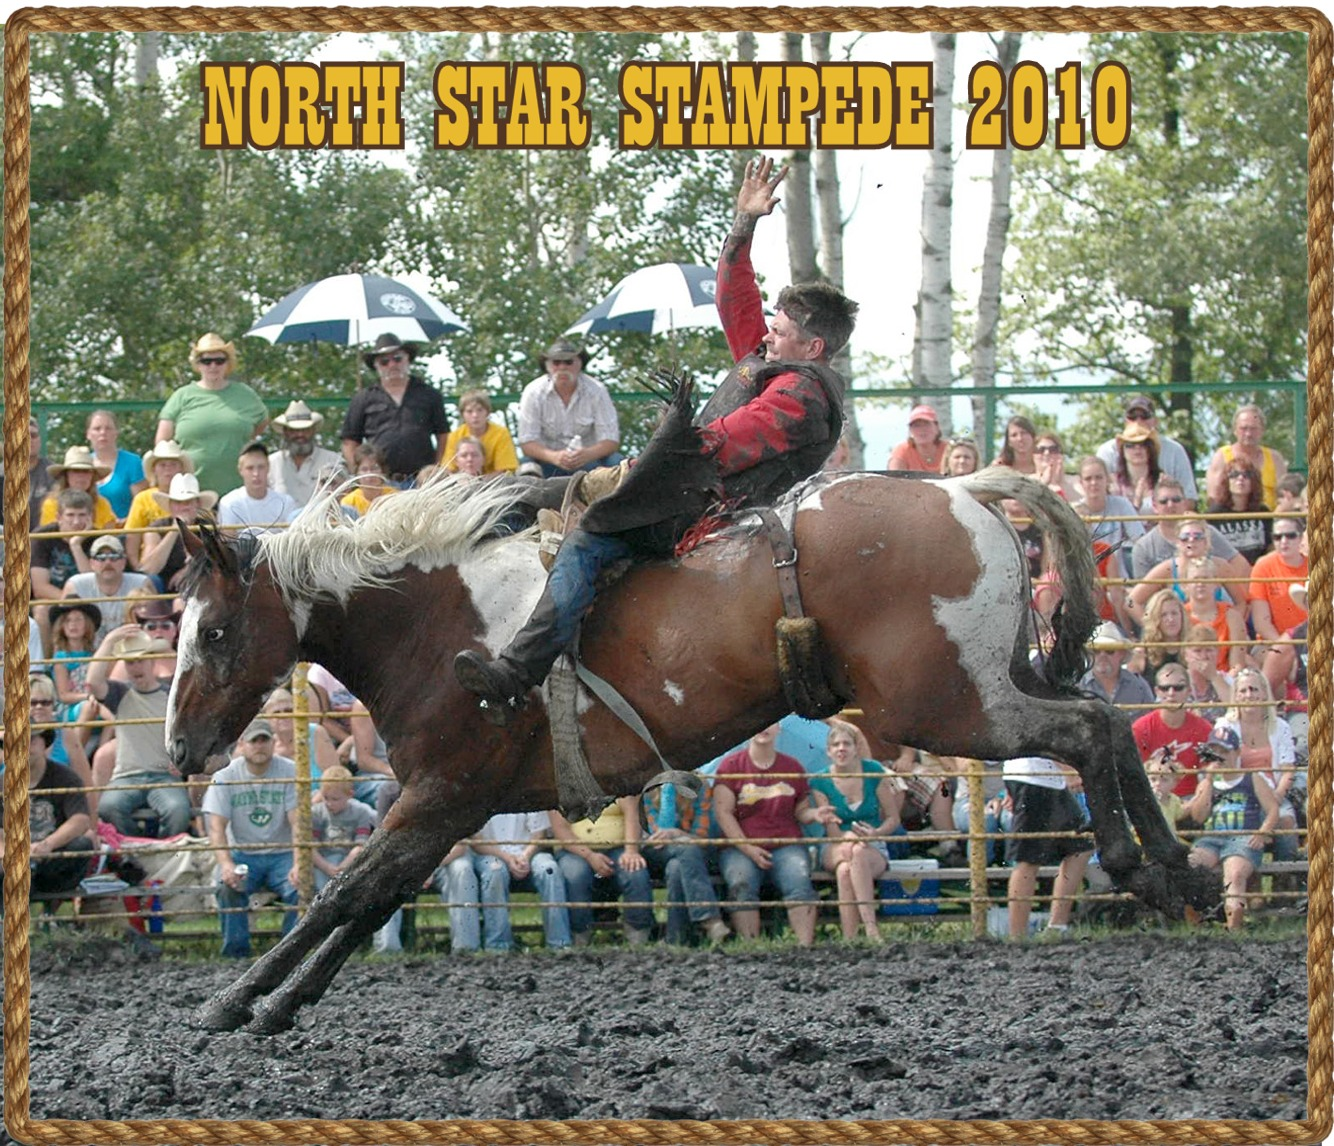 2010 North Star Stampede in Effie, MN